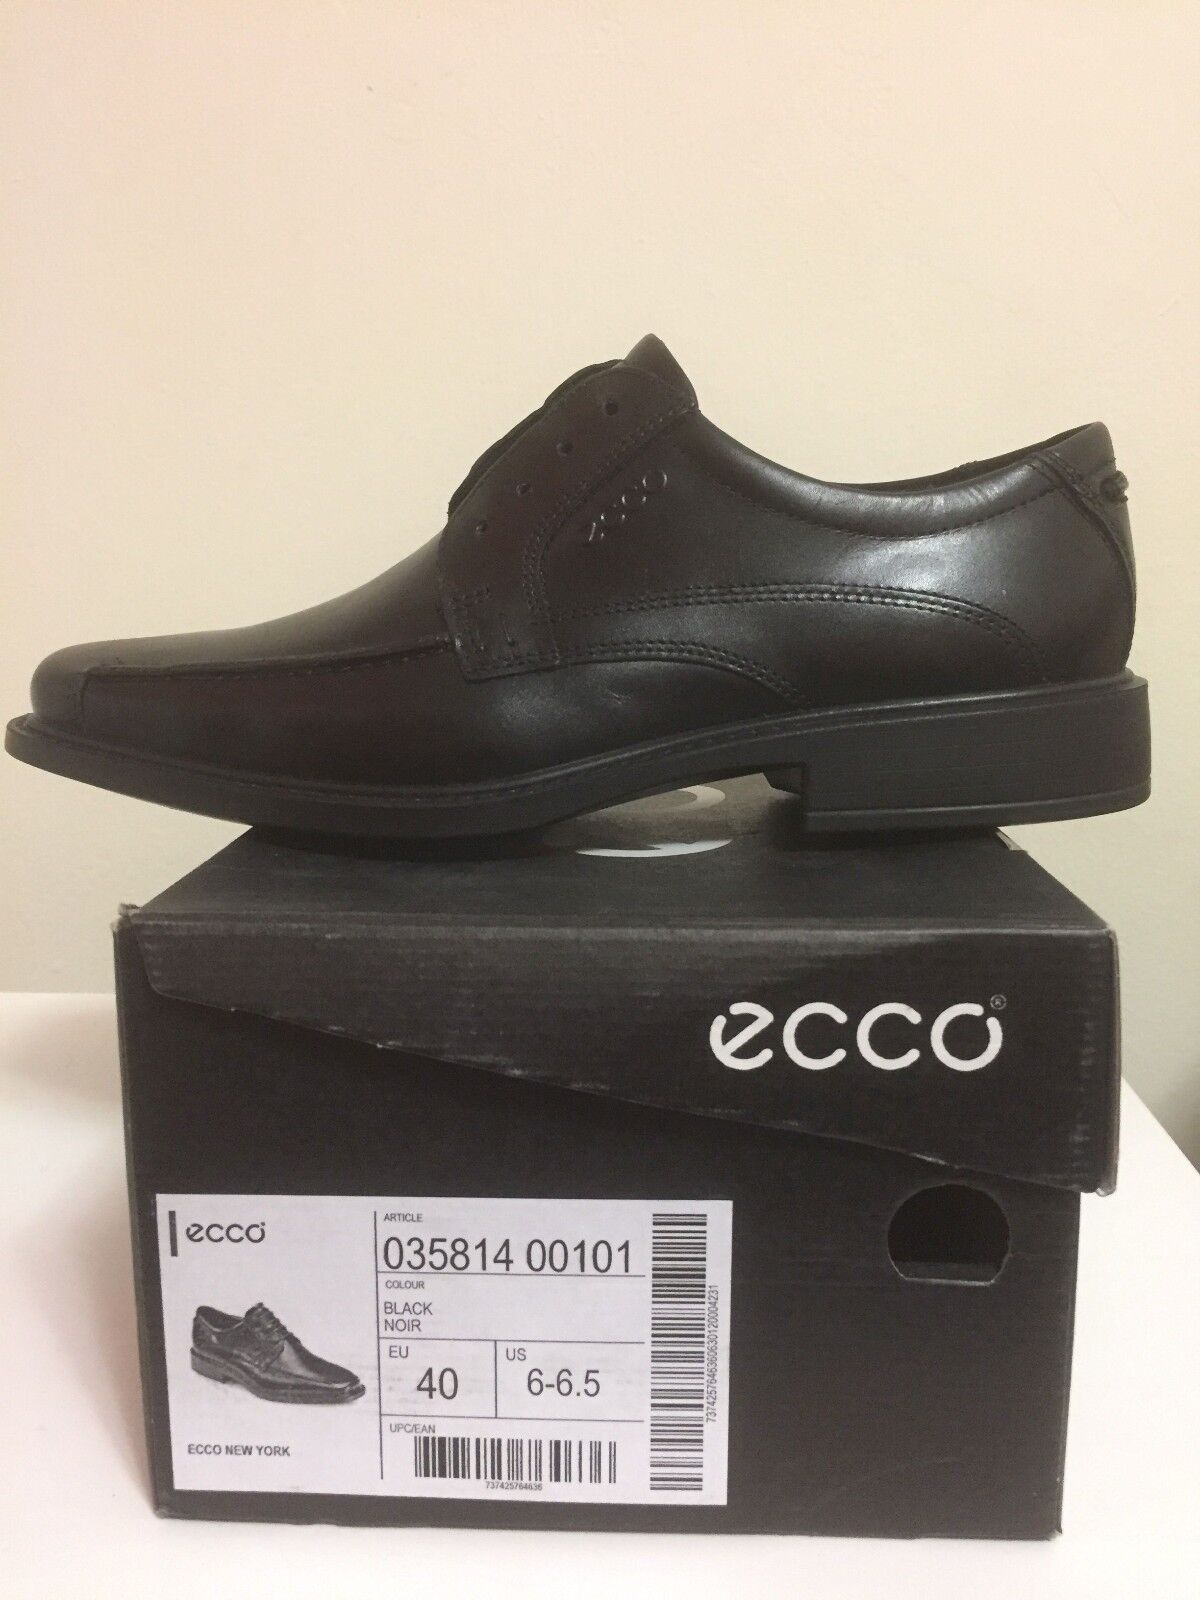 Ecco Up New York Leather Lace Up Ecco Bicycle Toe Tie Casual Comfort schuhe Mens Sz 6-6.5 95d2b3